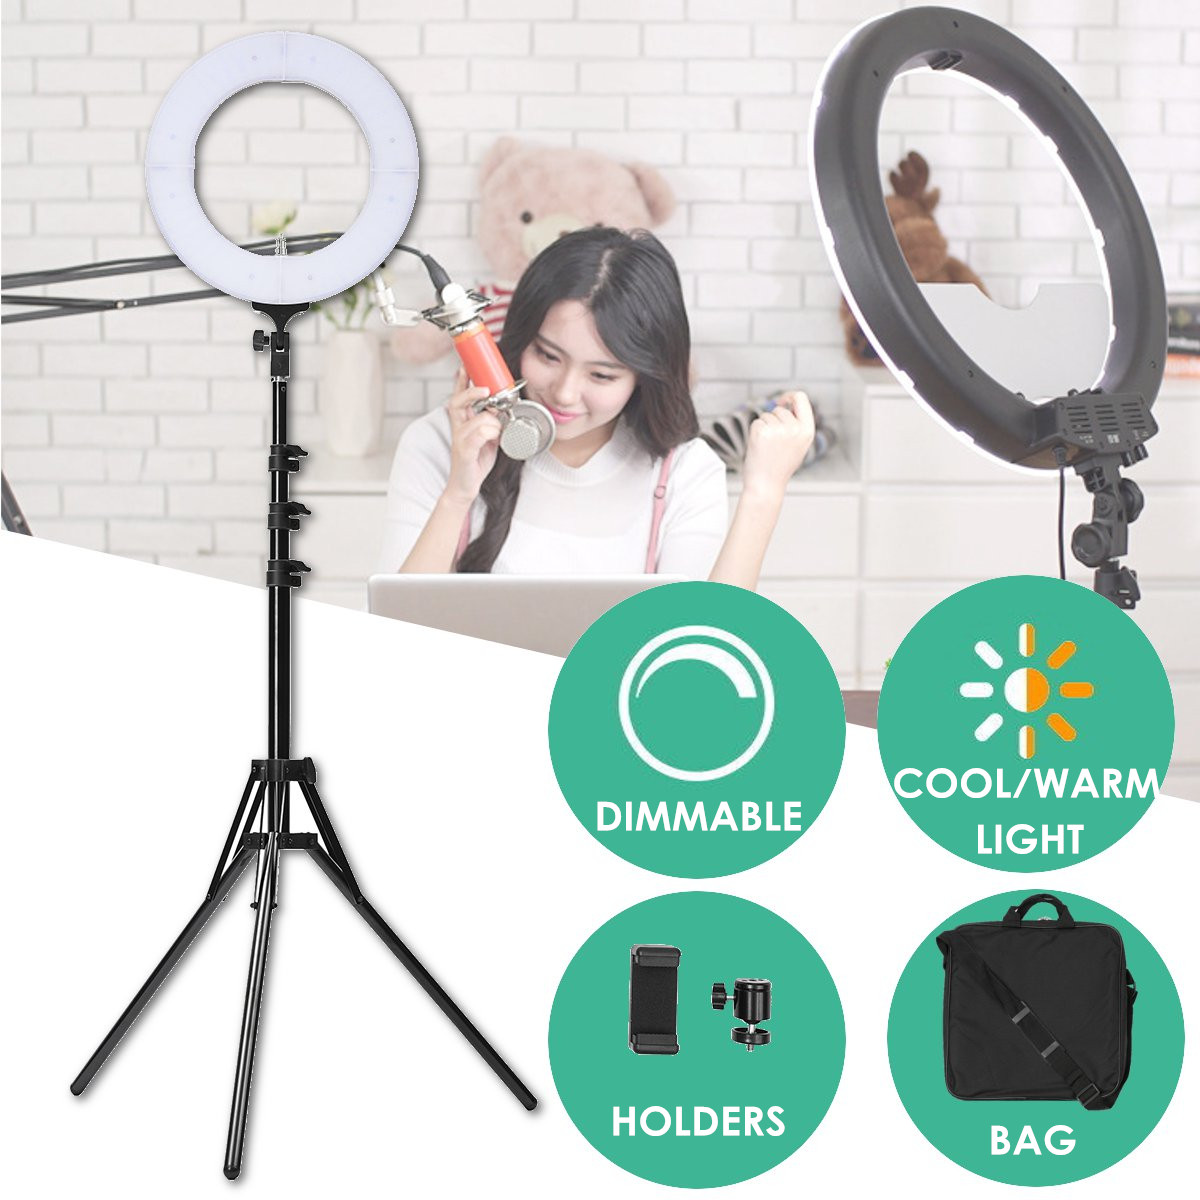 14'' 5500K Fill Light Dimmable LED Ring Tripod Camera Adjustable Selfie Lamp Makeup Mirror Light